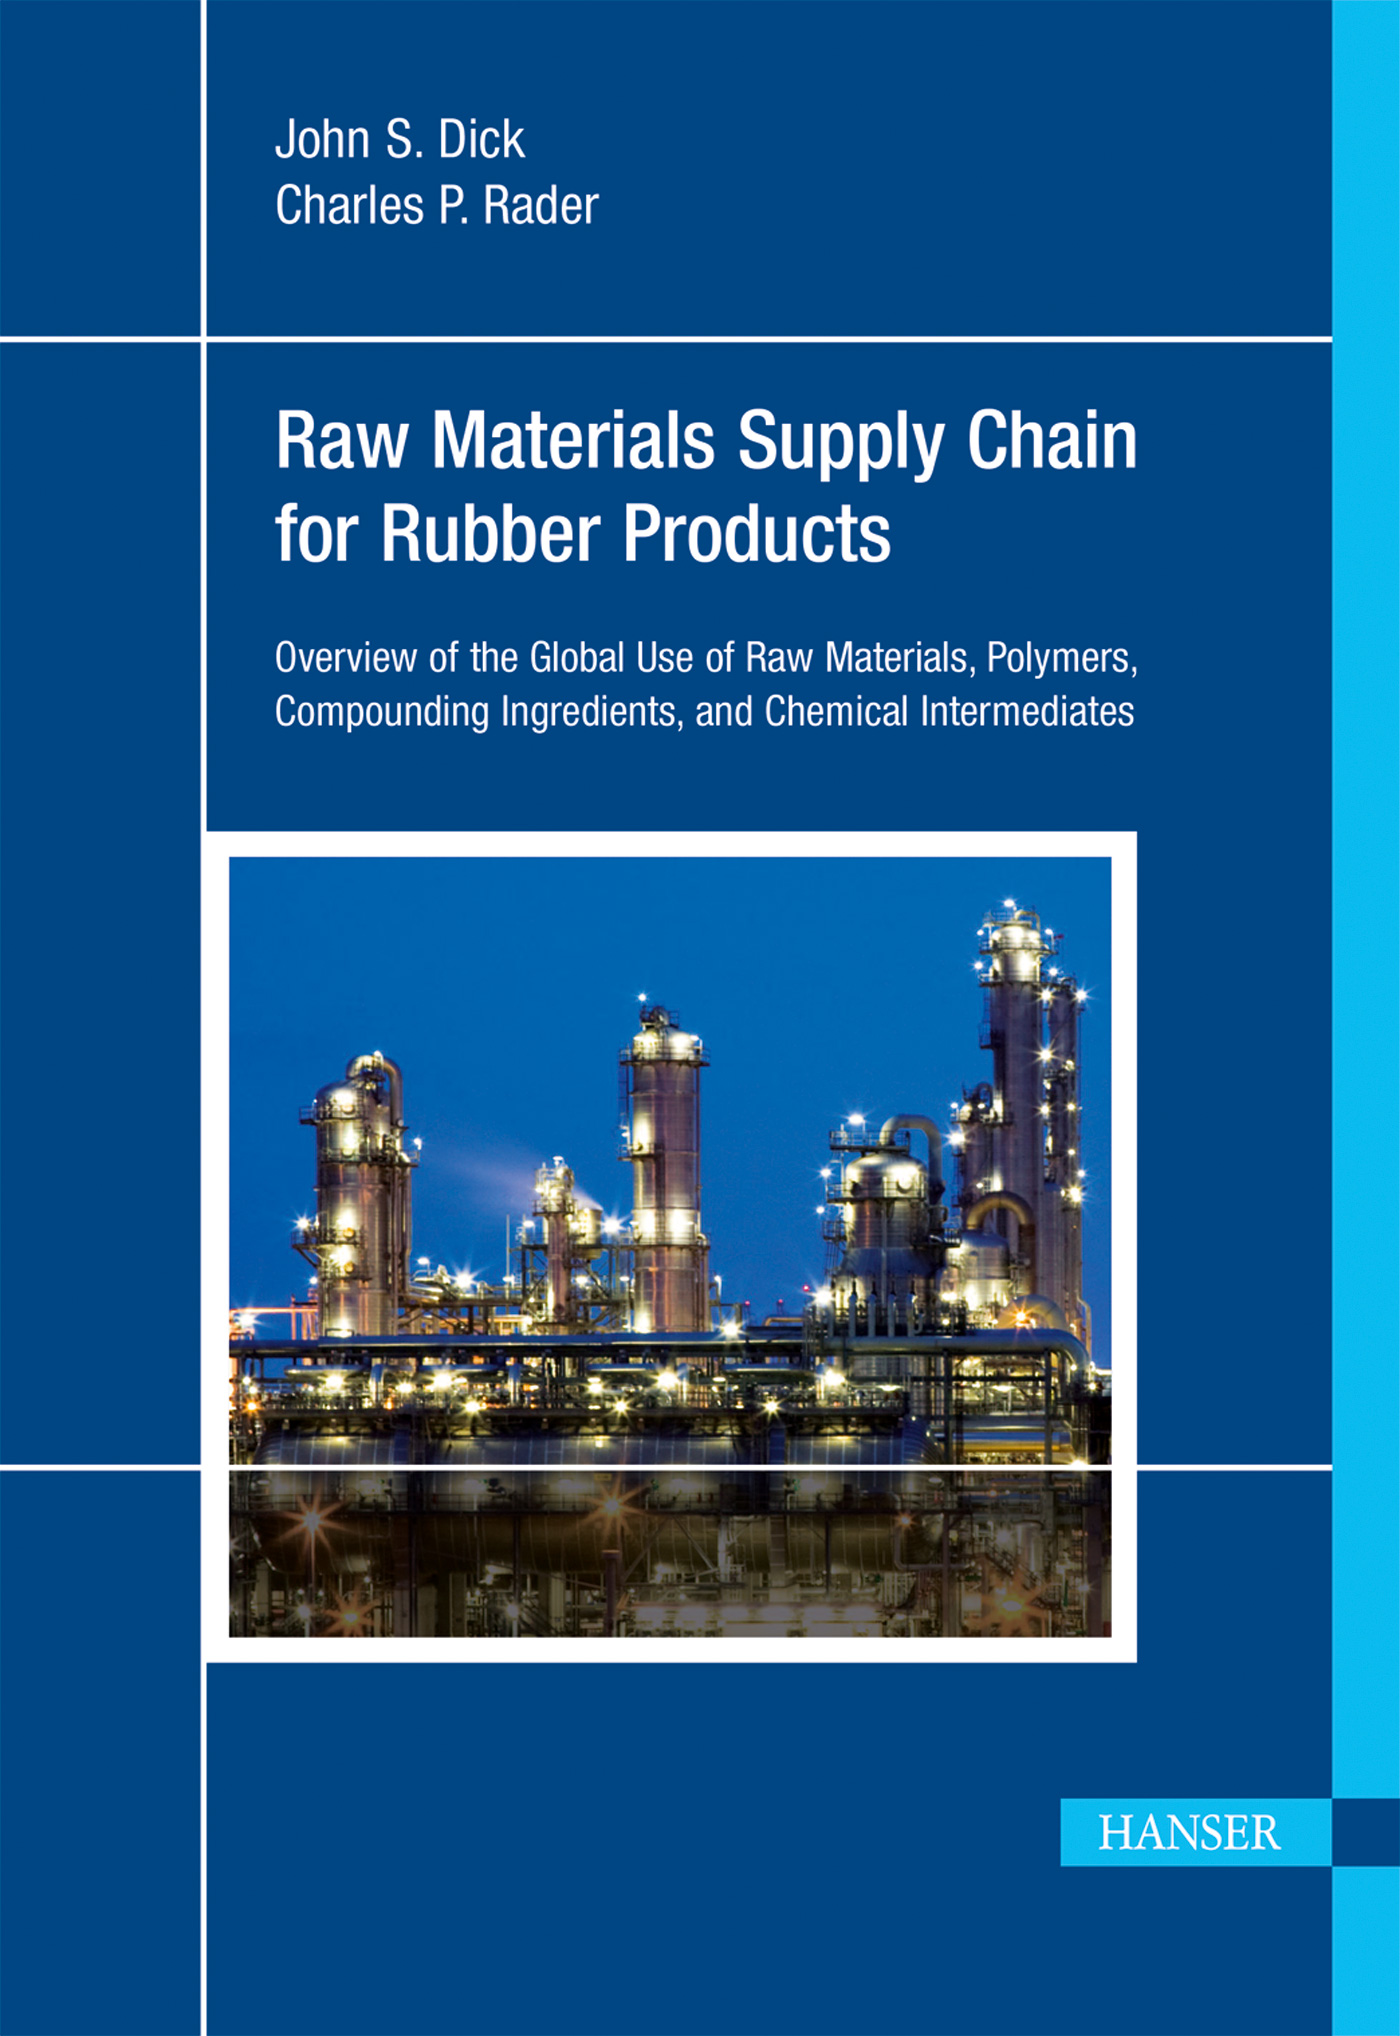 Dick, Raw Materials Supply Chain for Rubber Products, 978-1-56990-537-1